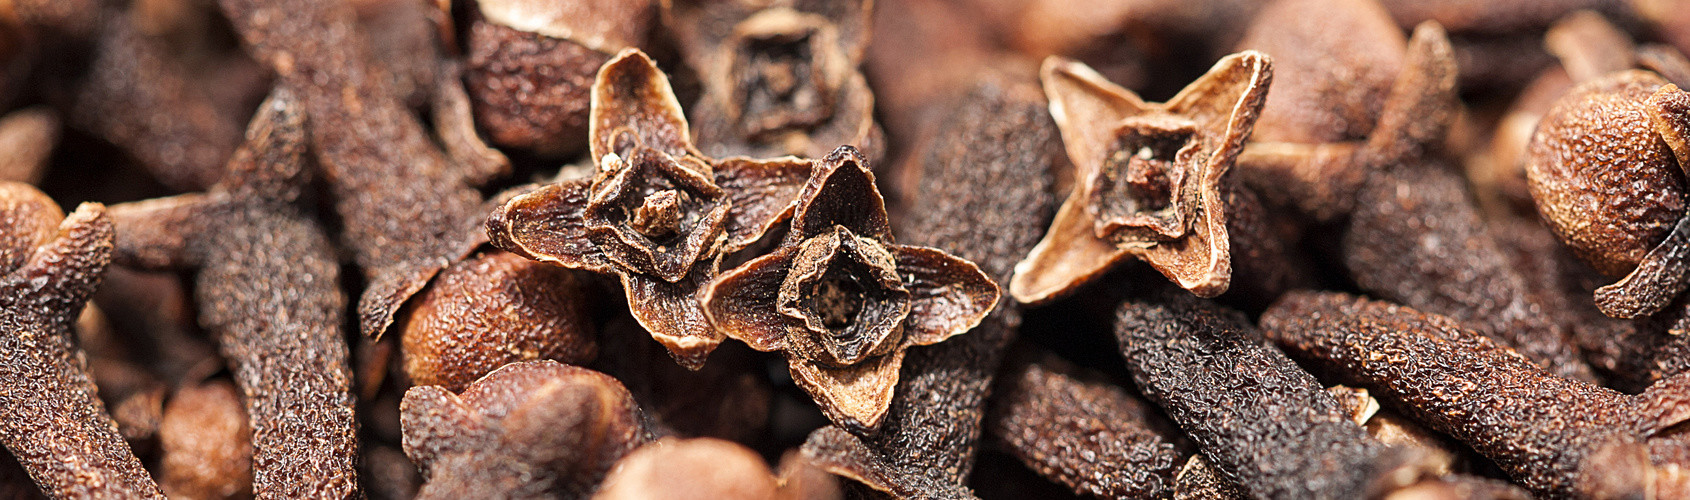 Cloves as background